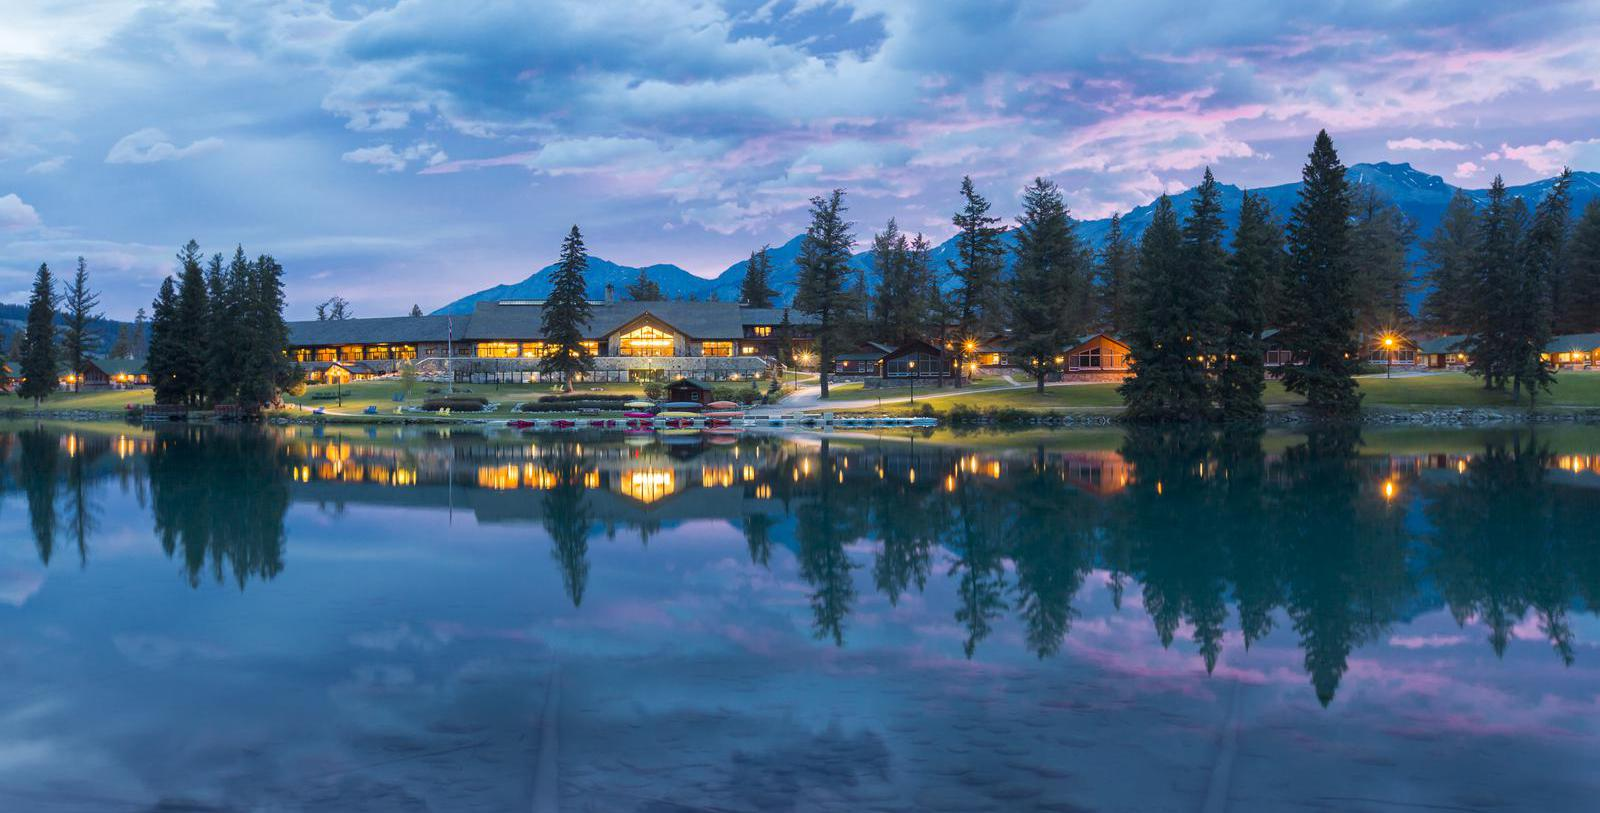 Image of hotel exterior and lake Fairmont Jasper Park Lodge, 1922, Member of Historic Hotels Worldwide, in Jasper, Alberta, Canada, Special Offers, Discounted Rates, Families, Romantic Escape, Honeymoons, Anniversaries, Reunions